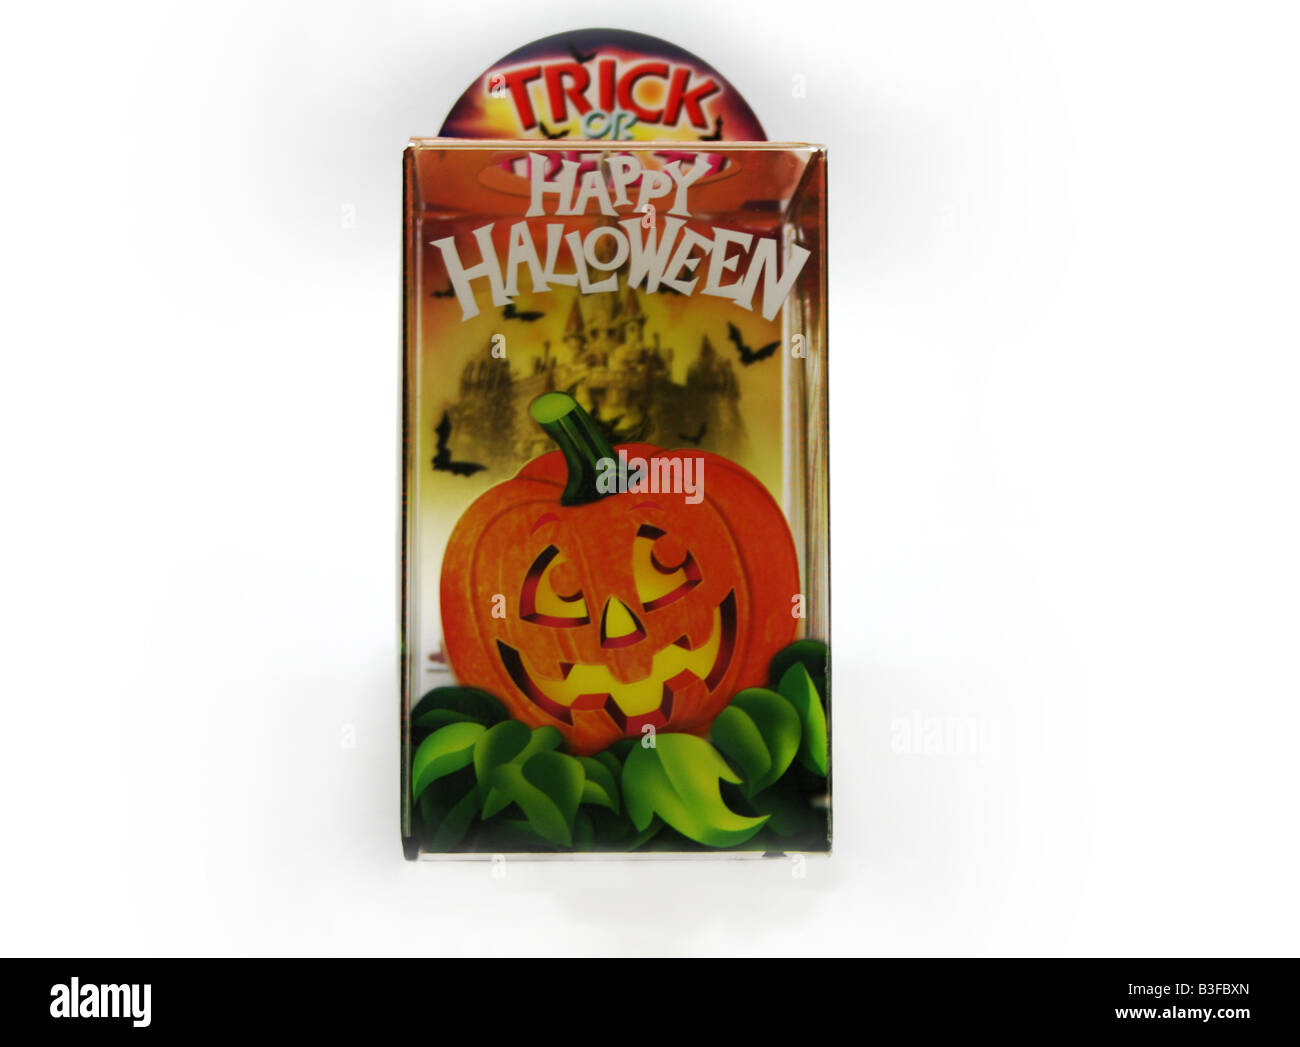 Trick Or Treat Happy Halloween Stationery Holder With Picture Of A Smiling Pumpkin For Children Adults At Home Or Office Use